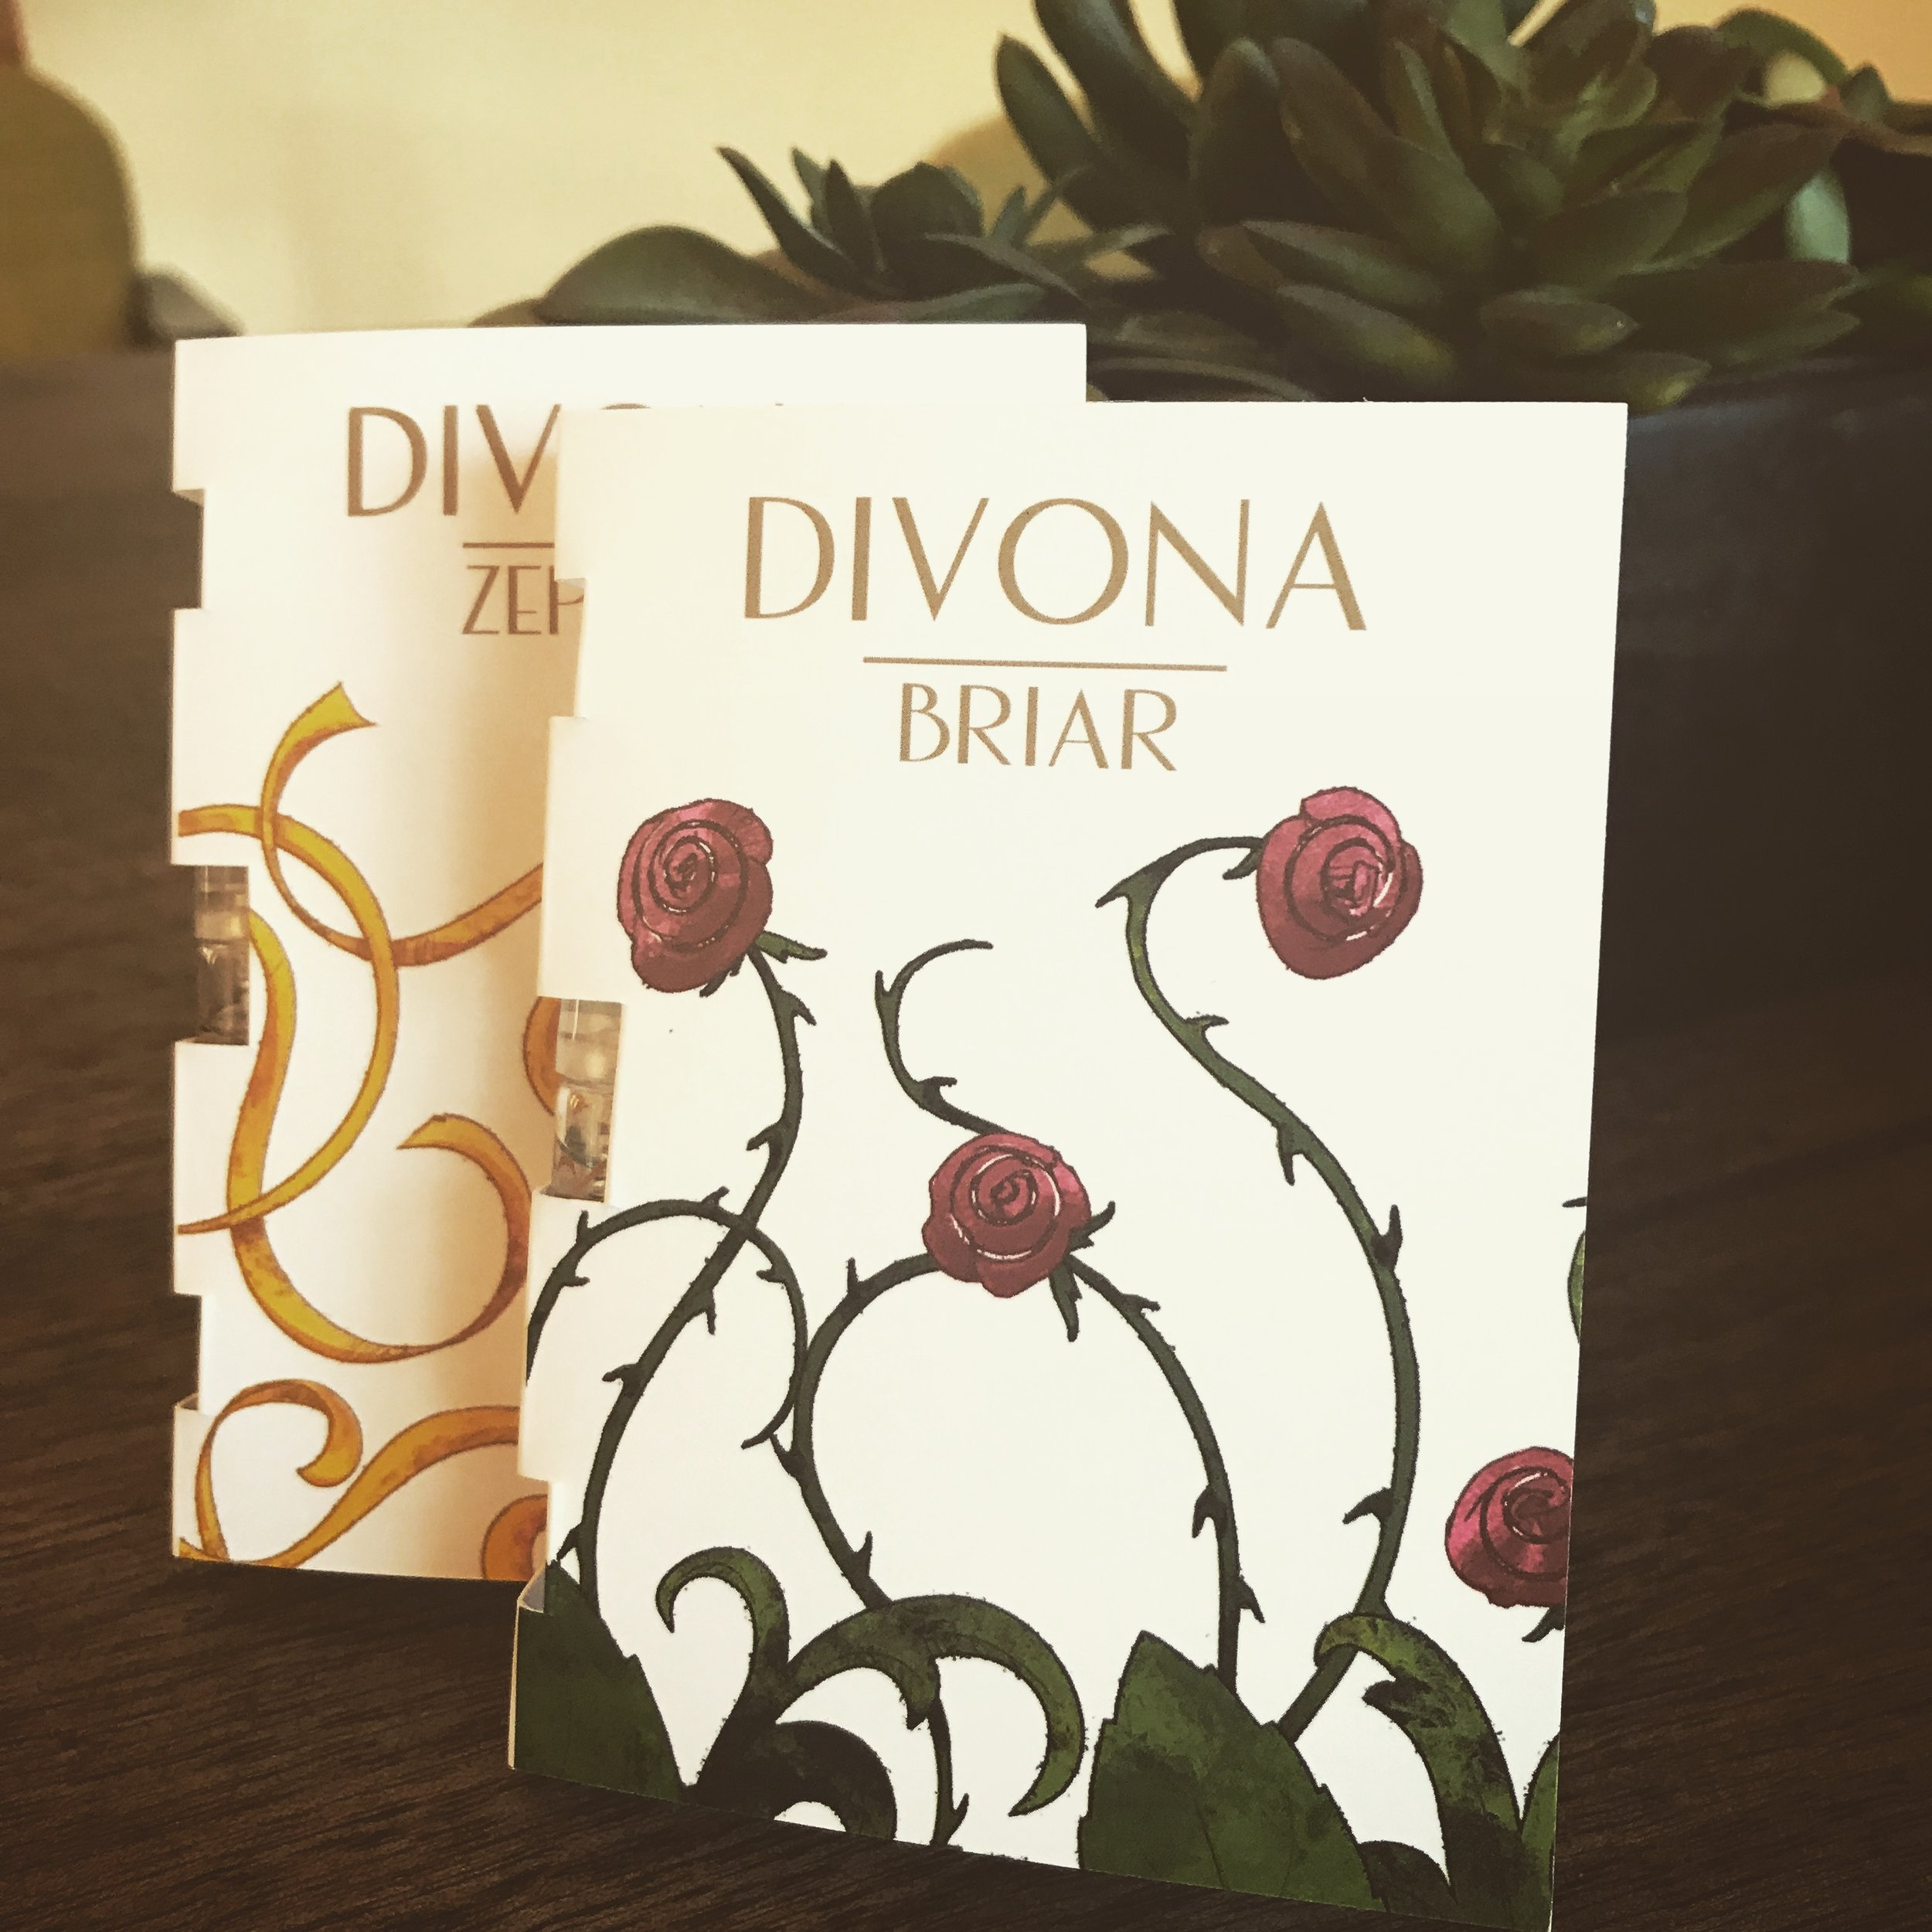 Cynthia Johnson's DIVONA giveaway